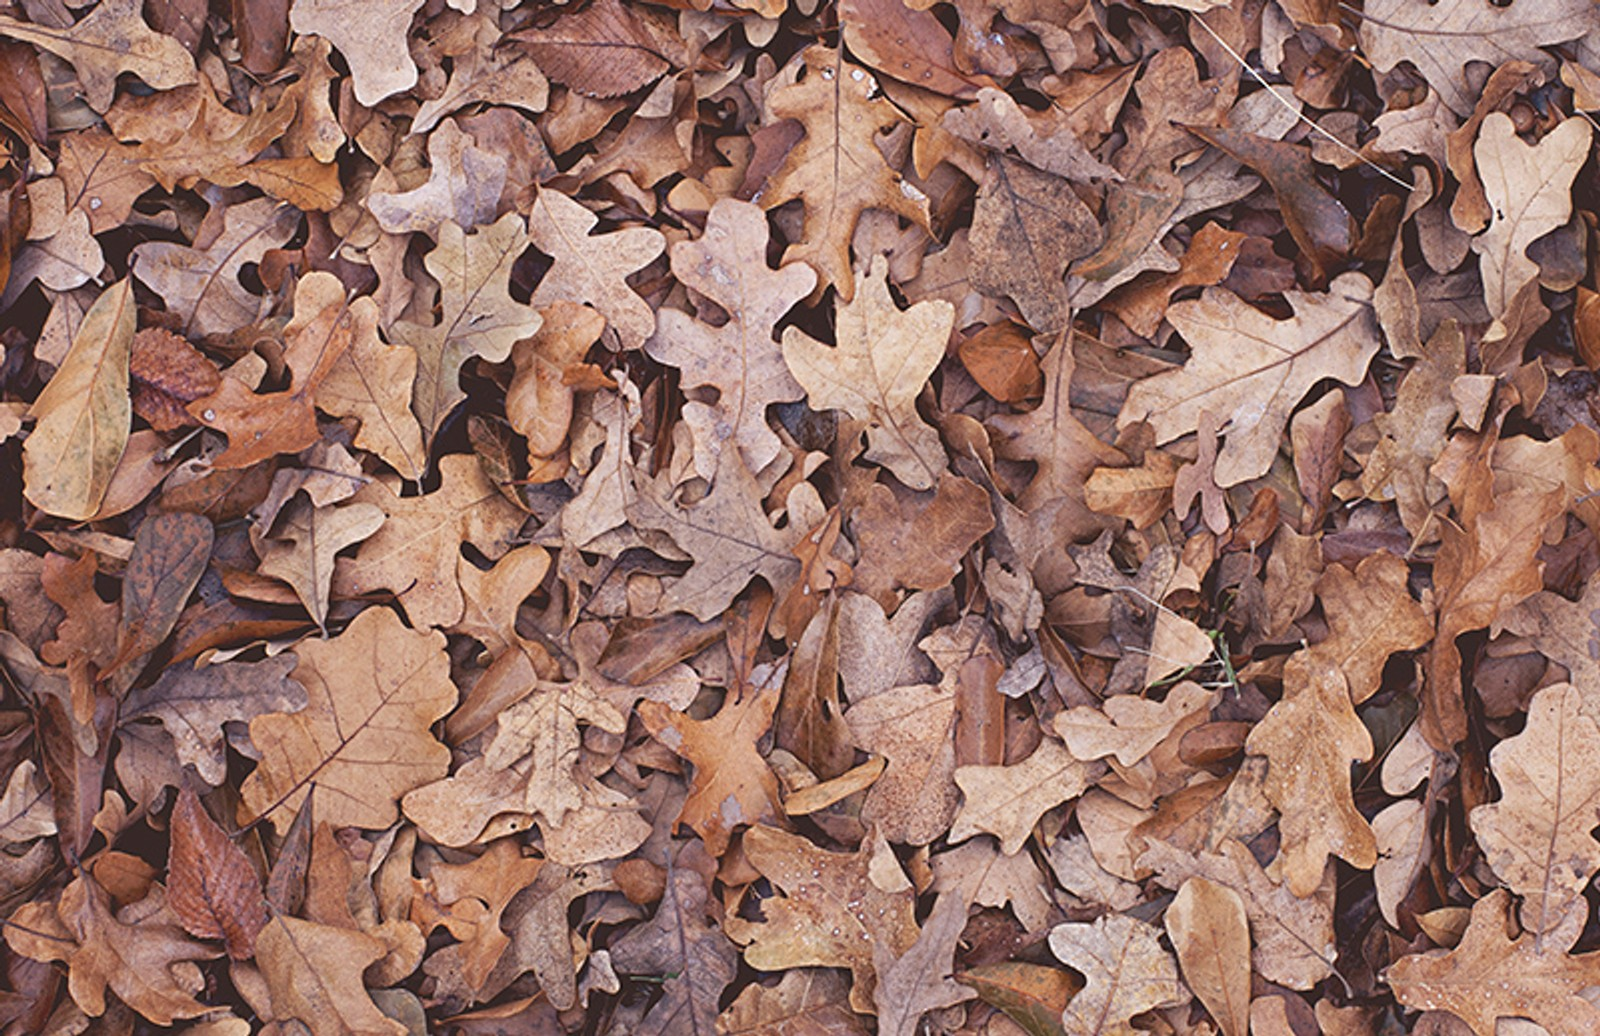 Dry  Leaves  Texture  Pack  Preview 1